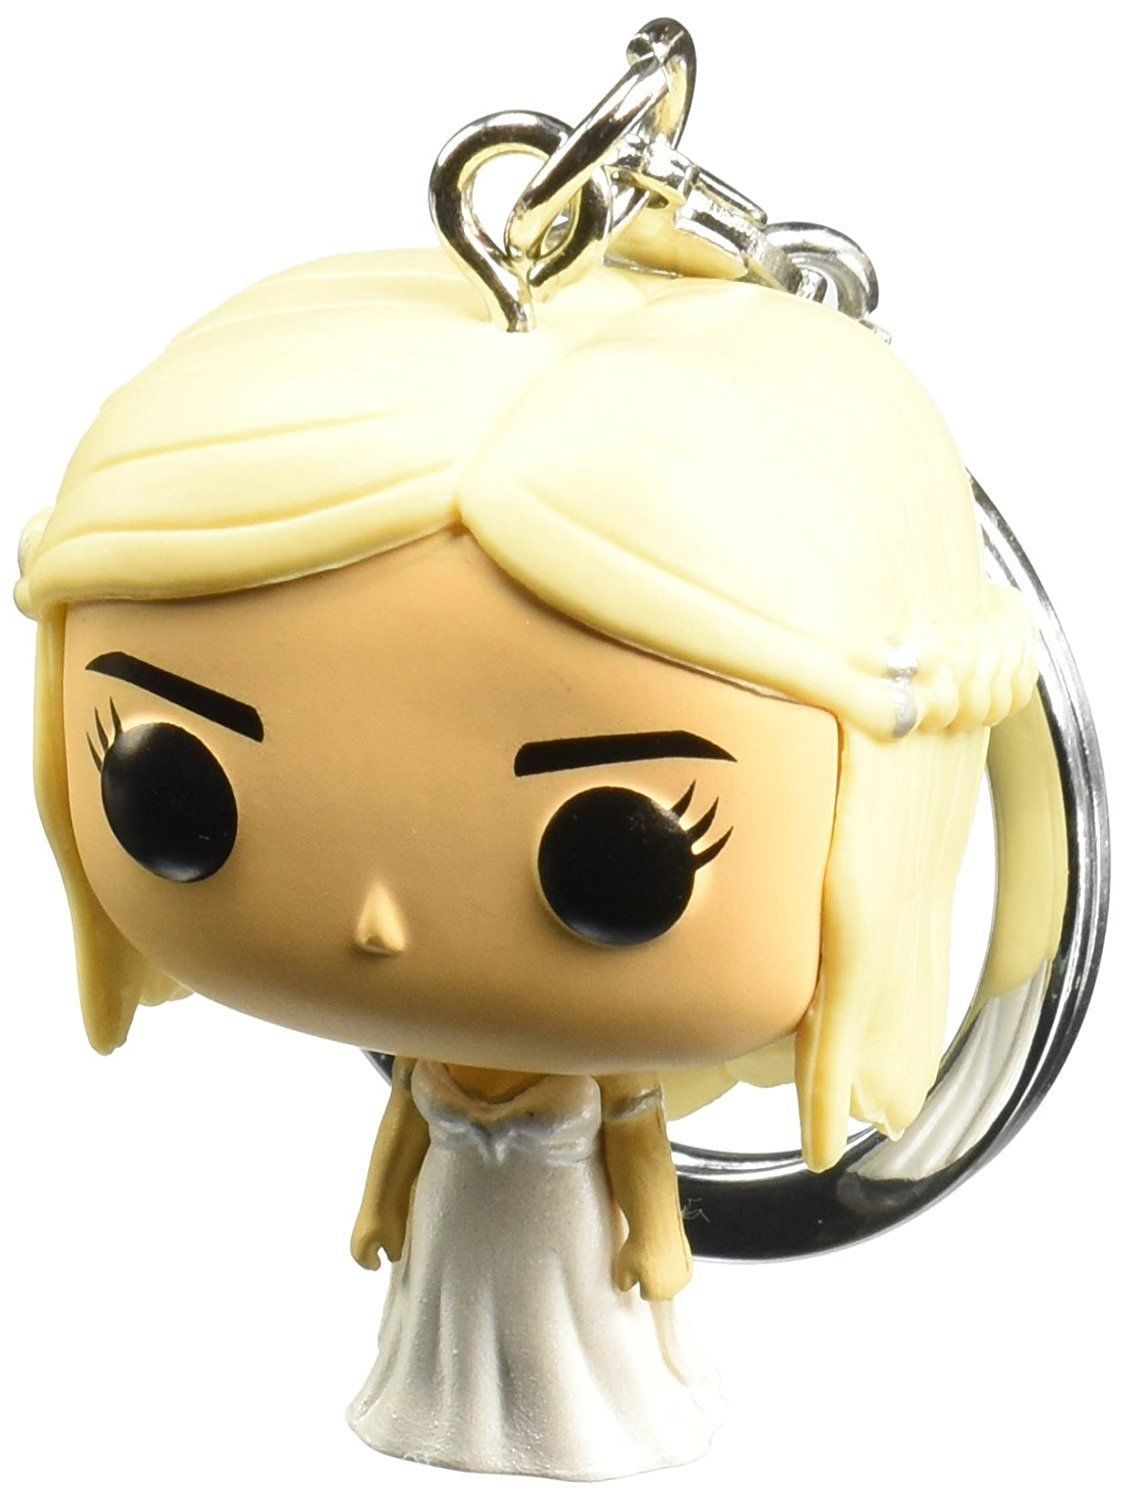 Game of Thrones FUNKO POCKET POP! KEYCHAIN Daenerys Targaryen